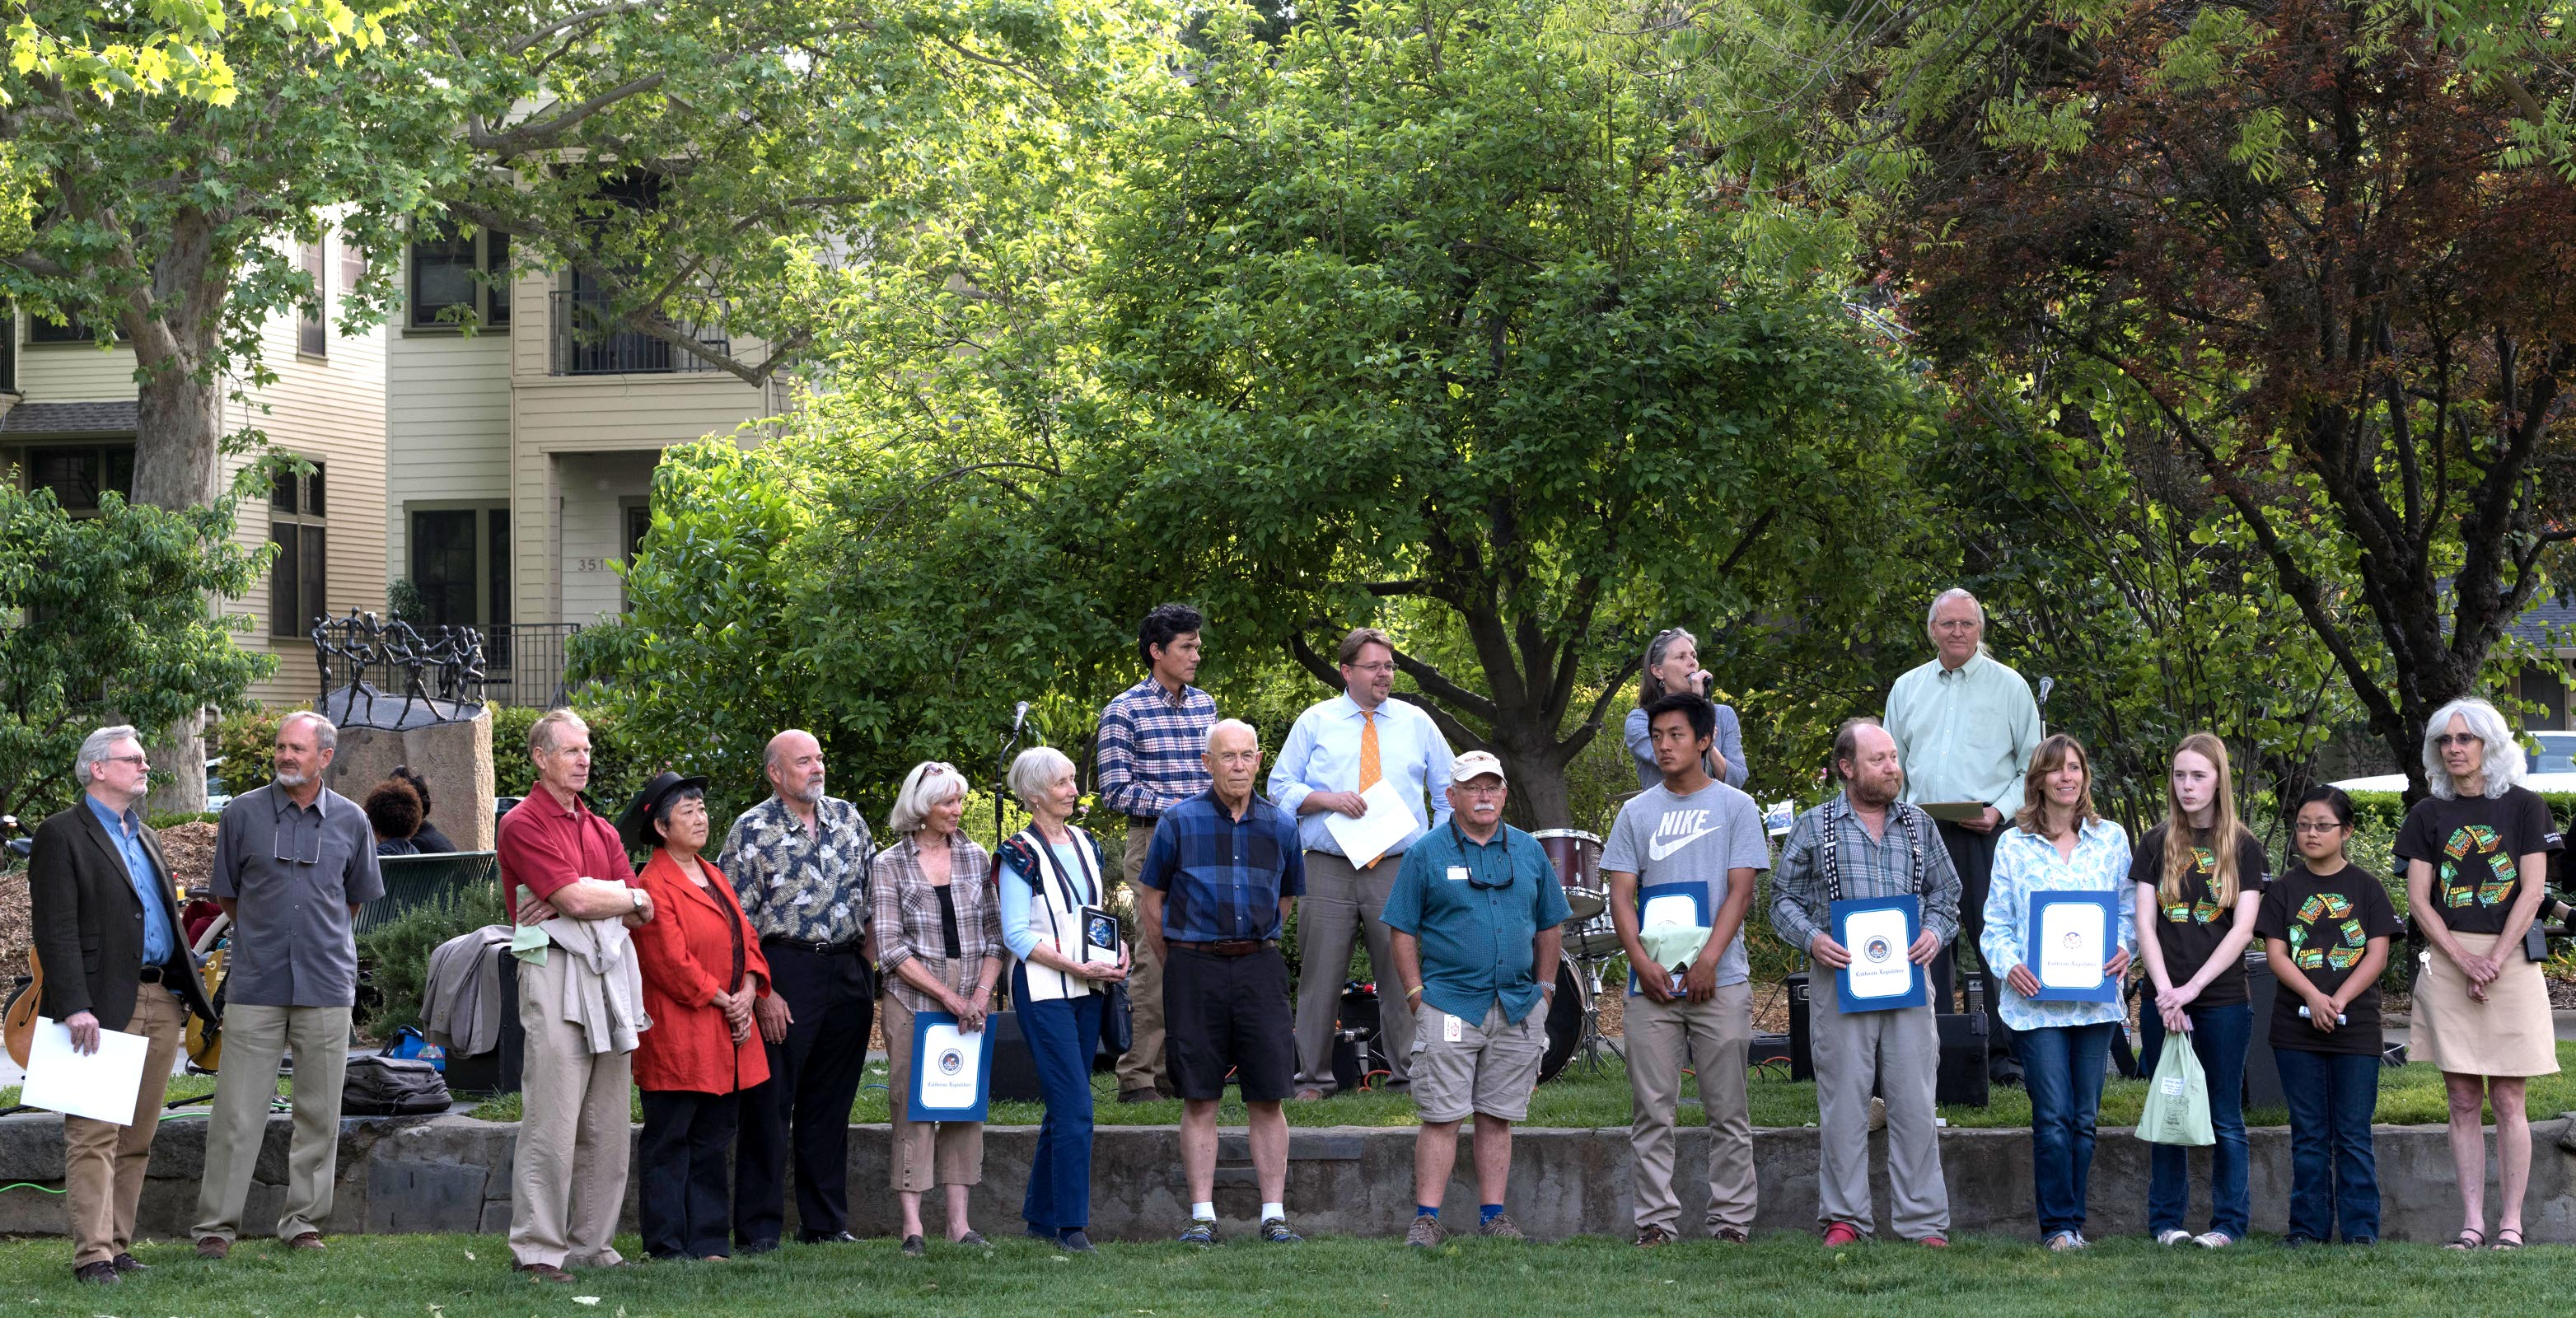 After the Cool Davis 2015 Awards were presented in the US Bicycling Hall of Fame, the whole group of awardees moved to the Davis Farmers Market Bandstand area, where Bill Heinicke, President of the Cool Davis Board and Chris Granger, Executive Director for the organization, gave introductory remarks before Councilmen Lucas Frerichs and Brett Lee introduced the whole group of awardees to those at the Market's Earth Day picnic.